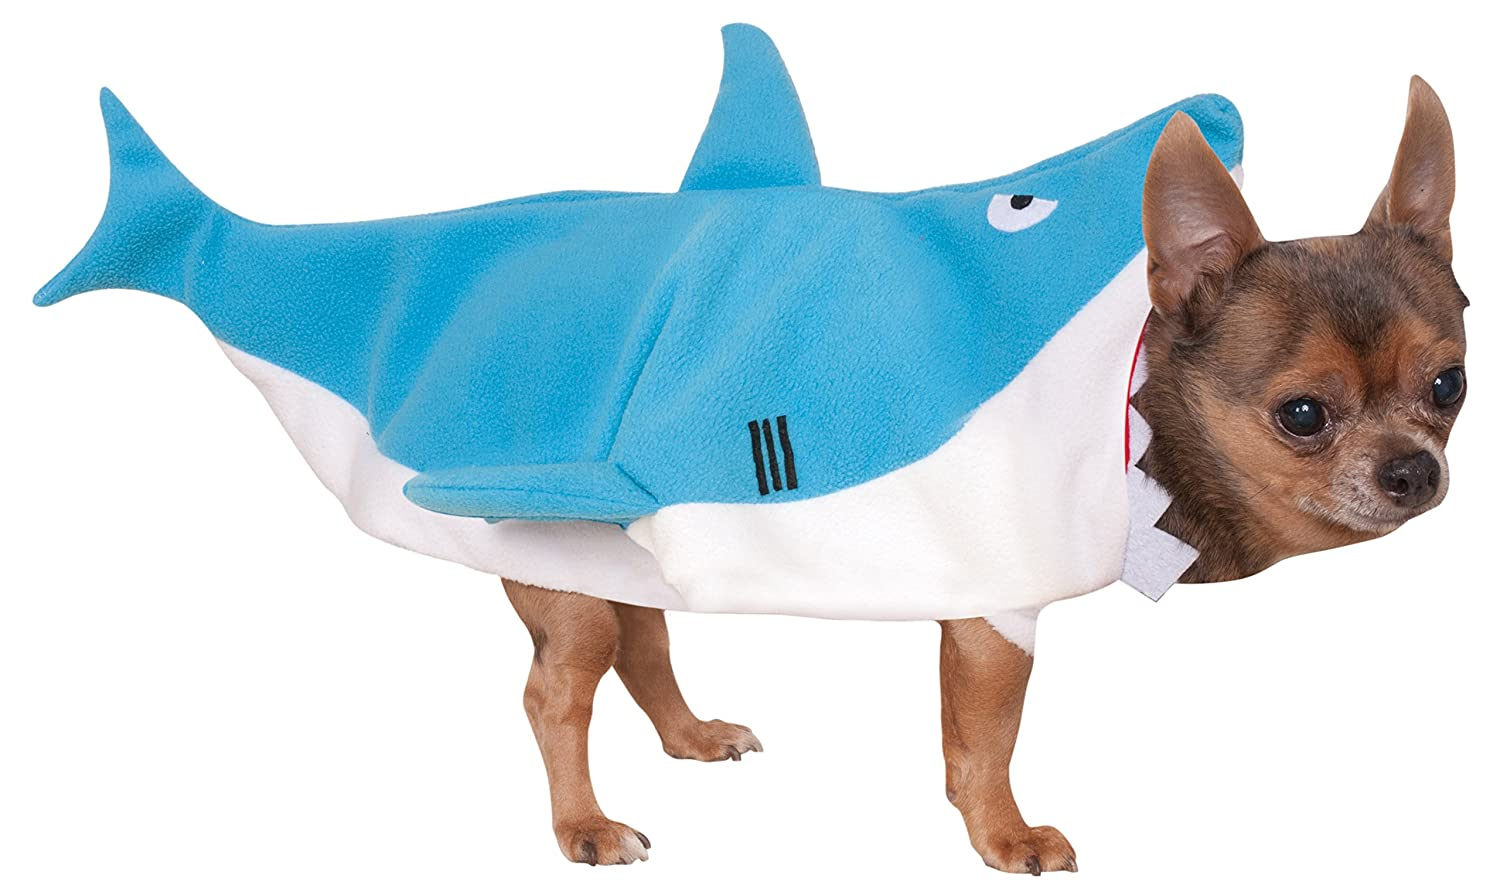 Rubie's Shark Pet Costume Rubie's Shark Pet Costume Extra-Large Rubies Costume Company 580080 XL